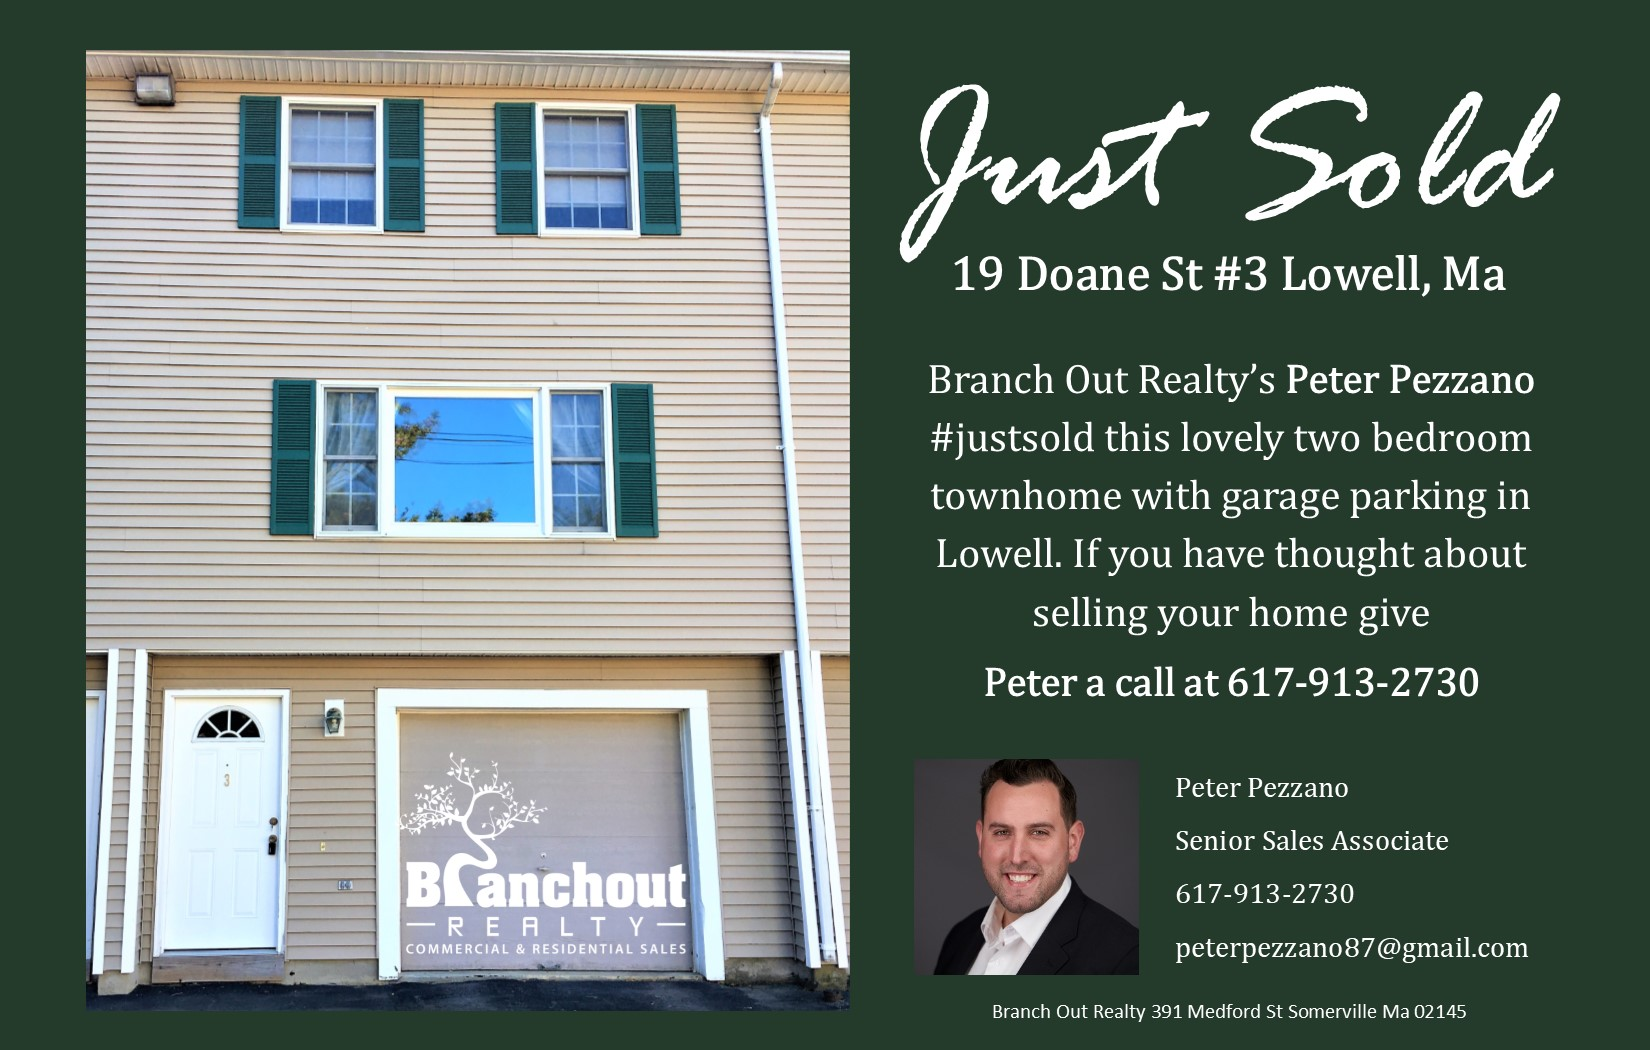 Just sold property in Lowell